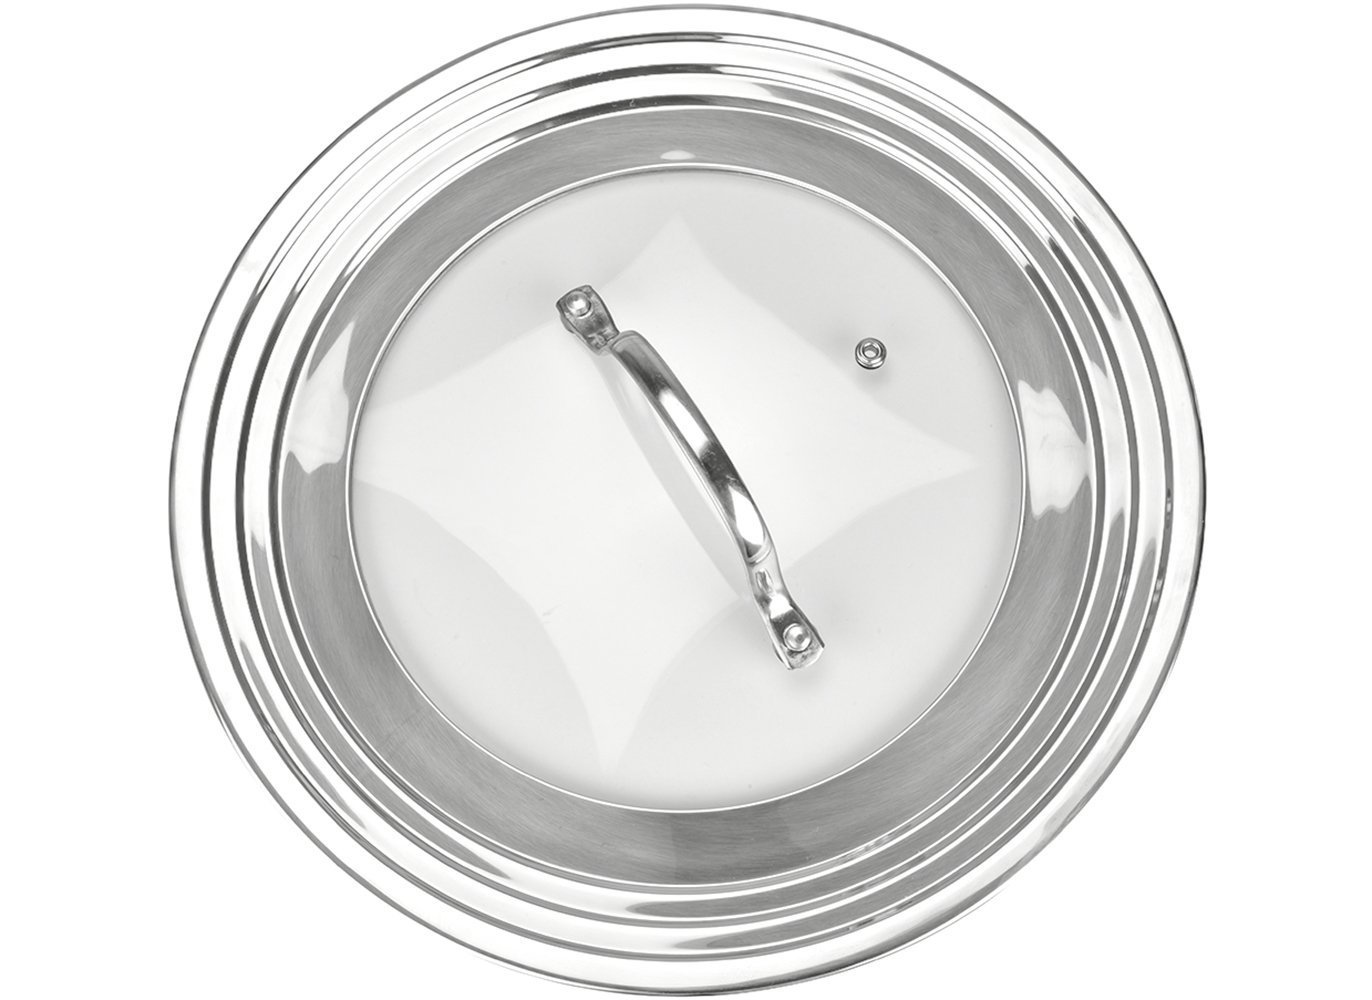 Elegant Stainless Steel and Glass Universal Lid, Fits All 7'' to 12'' Pots and Pans, Replacement Frying Pan Cover and Cookware Lids - Modern Innovations